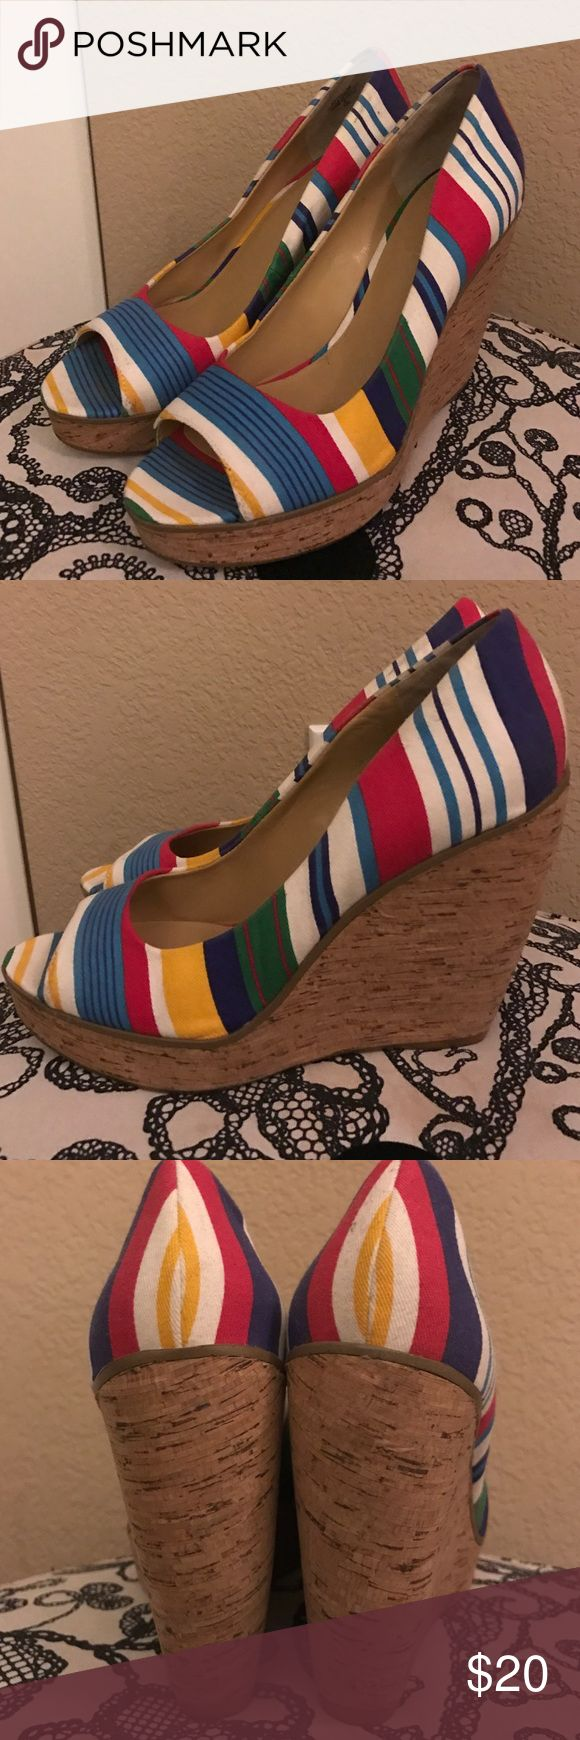 Nine West striped wedges These open toed wedges are in great condition! With the multi colored striped they go with so many outfits! Cork wedge makes them easy to wear! Get ready for spring! Nine West Shoes Wedges